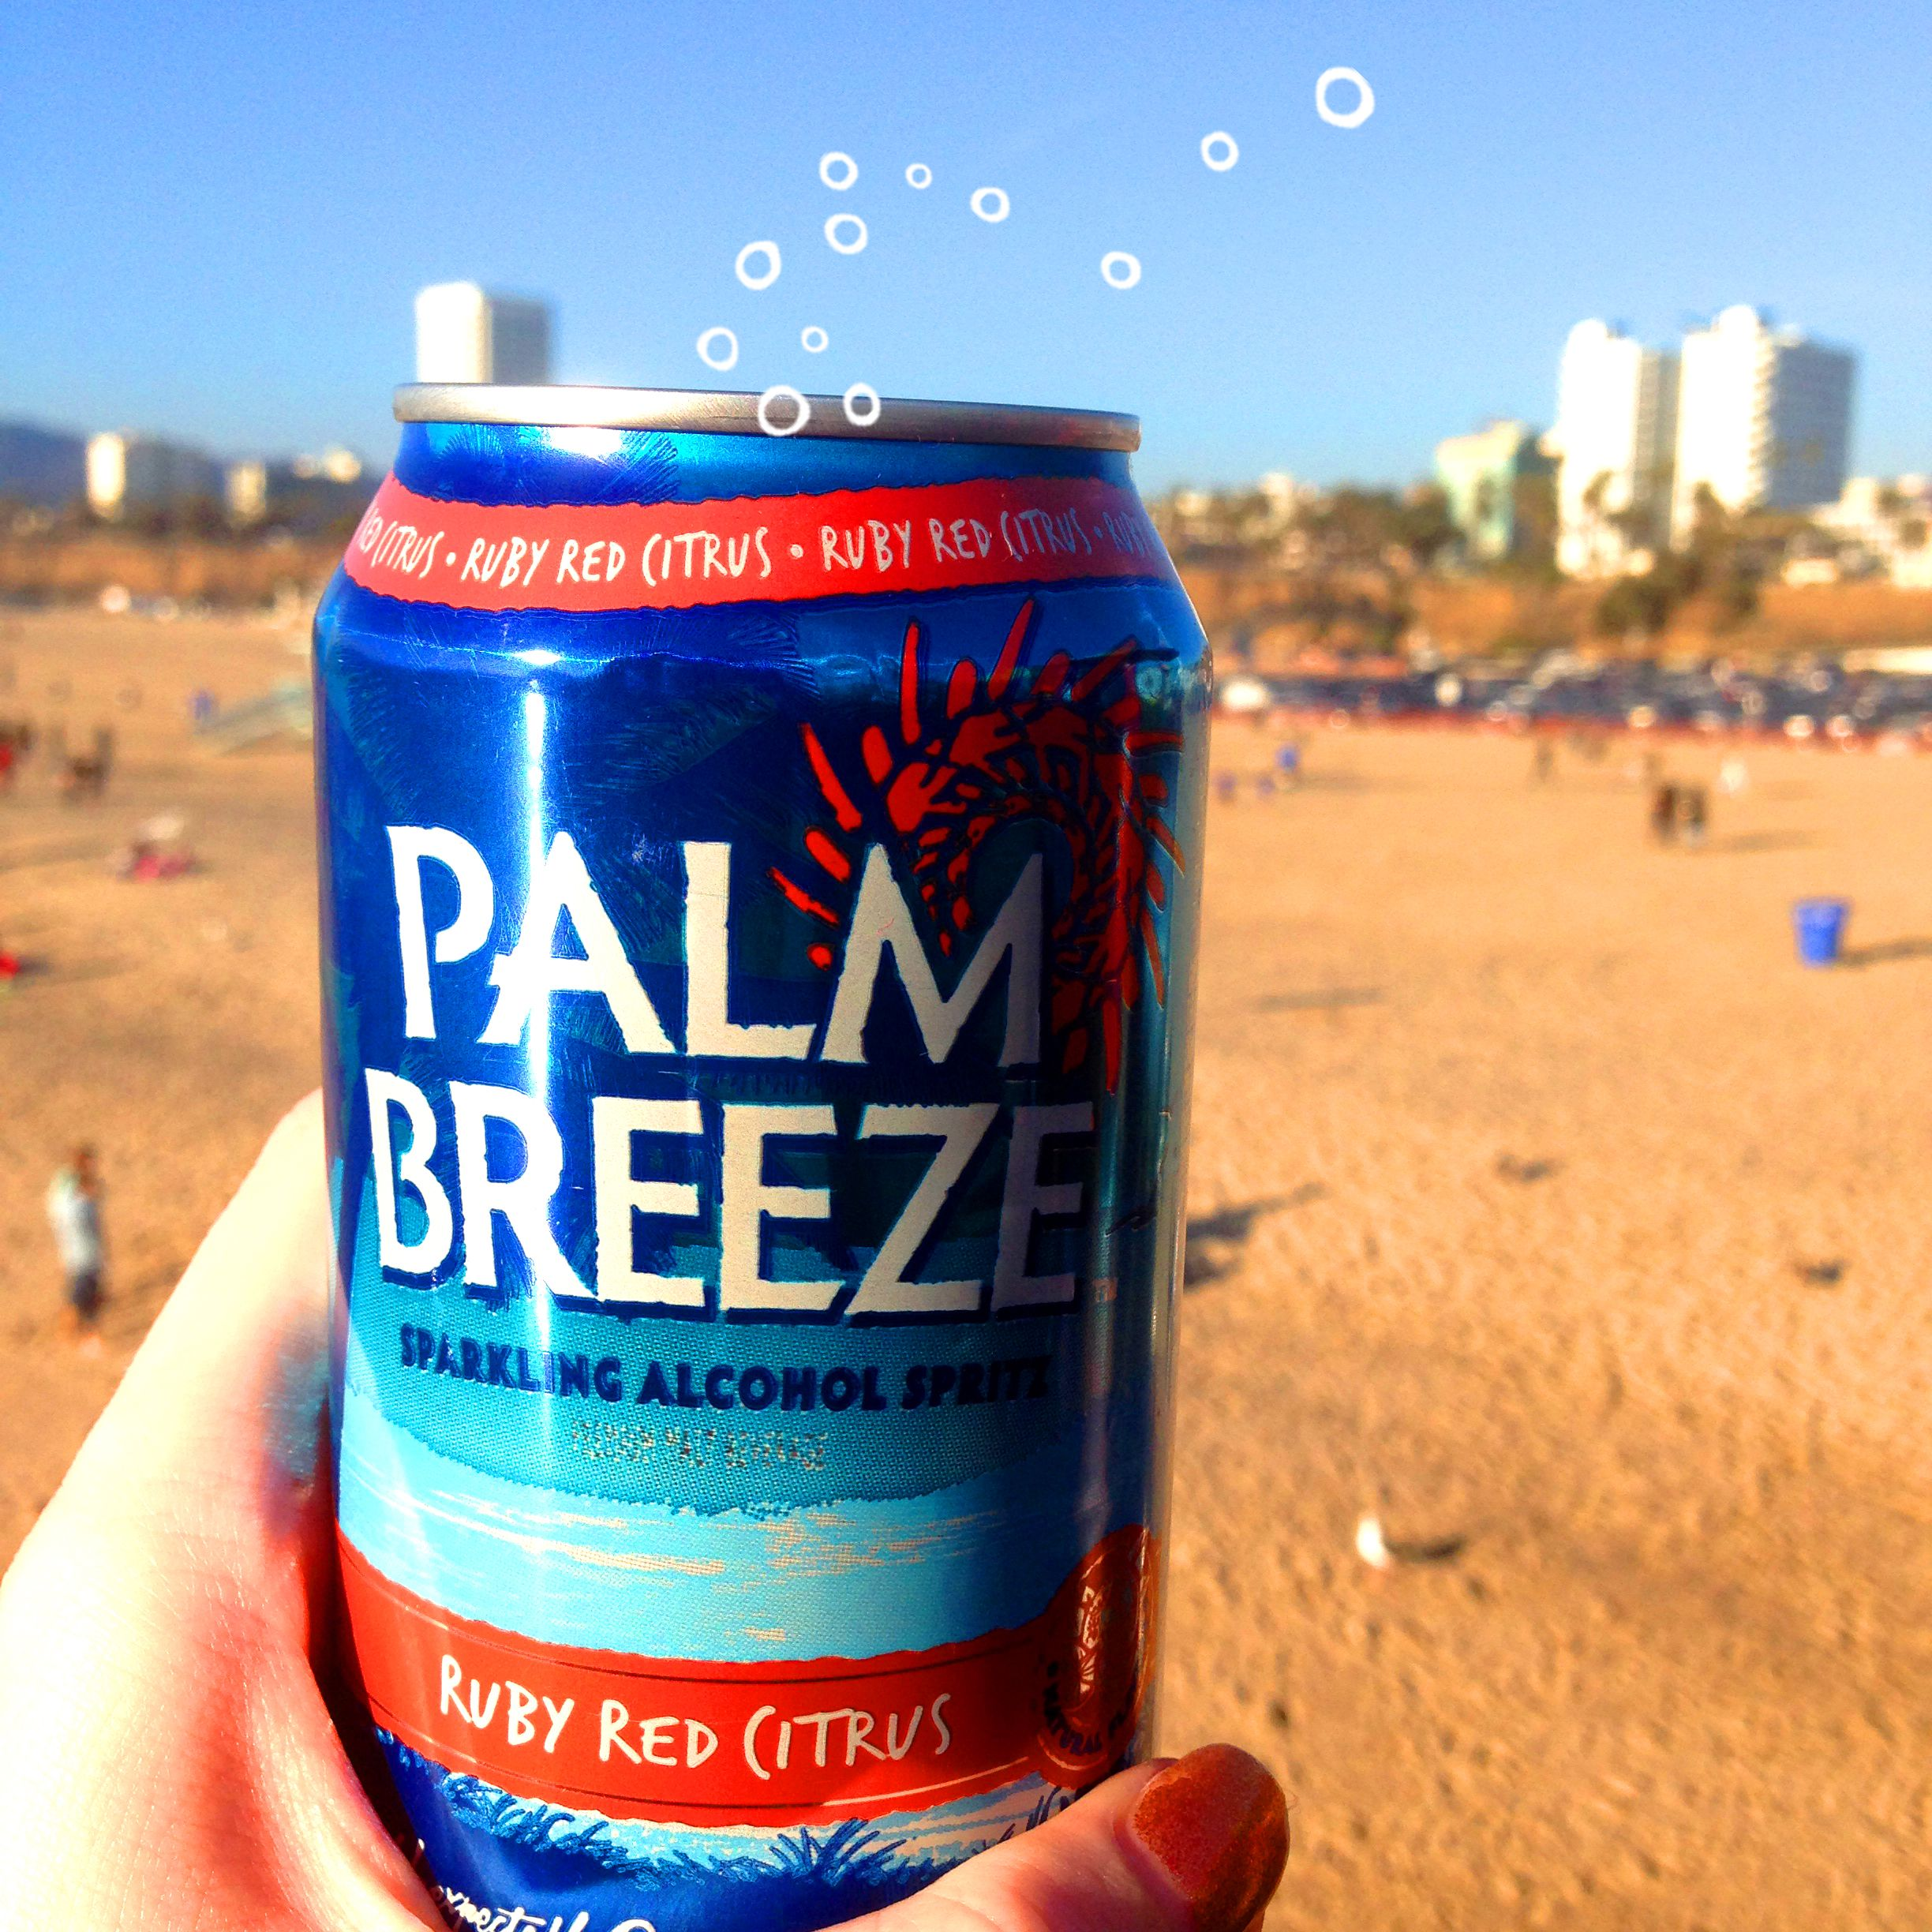 Unwind Time! Palm Breeze Ruby Red Citrus Is Made From